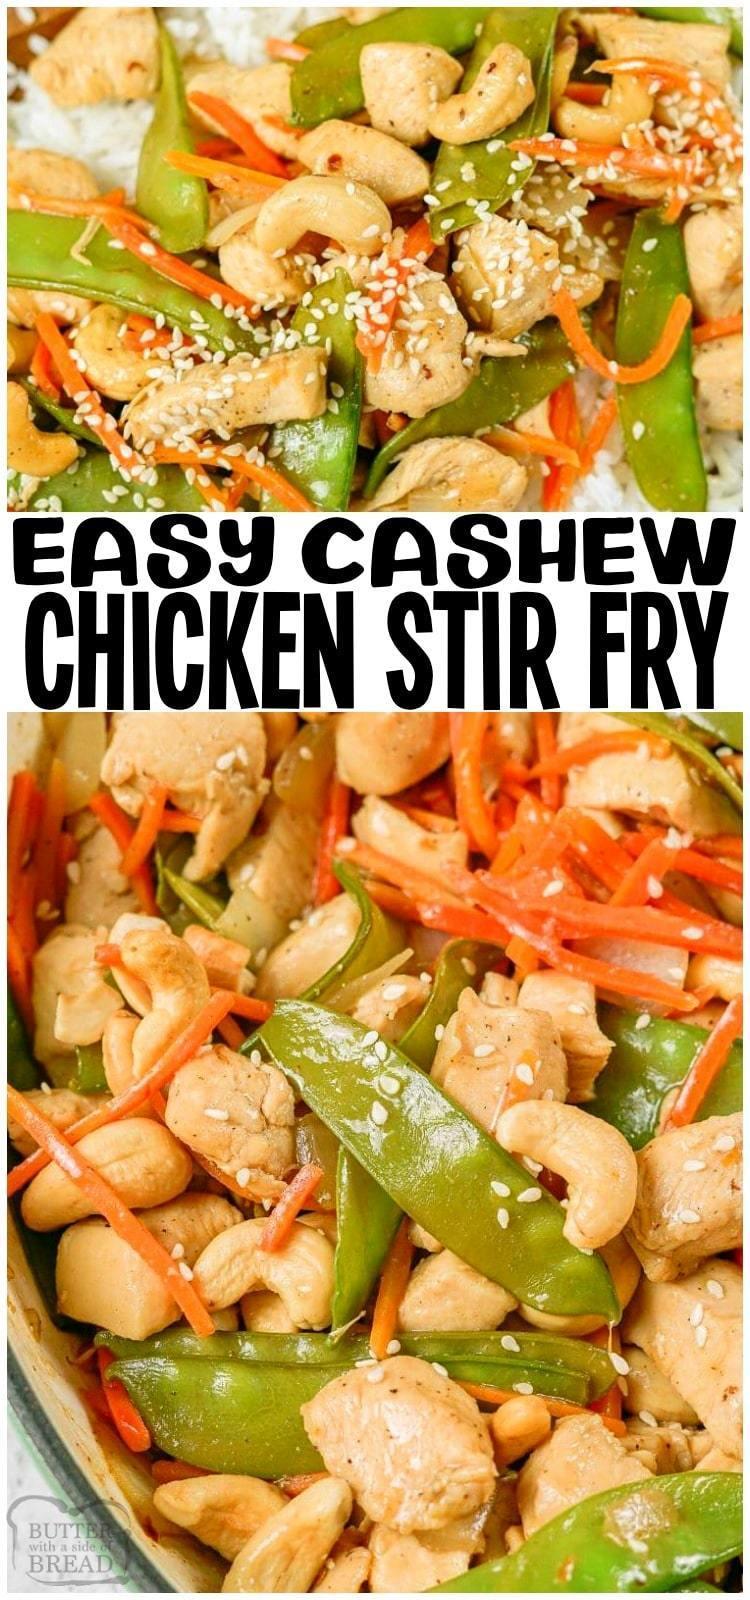 Cashew Chicken Stir Fry is a simple 30 minute meal made with tender chicken & veggies in a flavorful Asian sauce! Stay home, save your money and make up this easy homemade Cashew Chicken Recipe! #chicken #stirfry #chickendinner #Asianrecipe #cashewchicken #dinner #easydinner #recipe from BUTTER WITH A SIDE OF BREAD